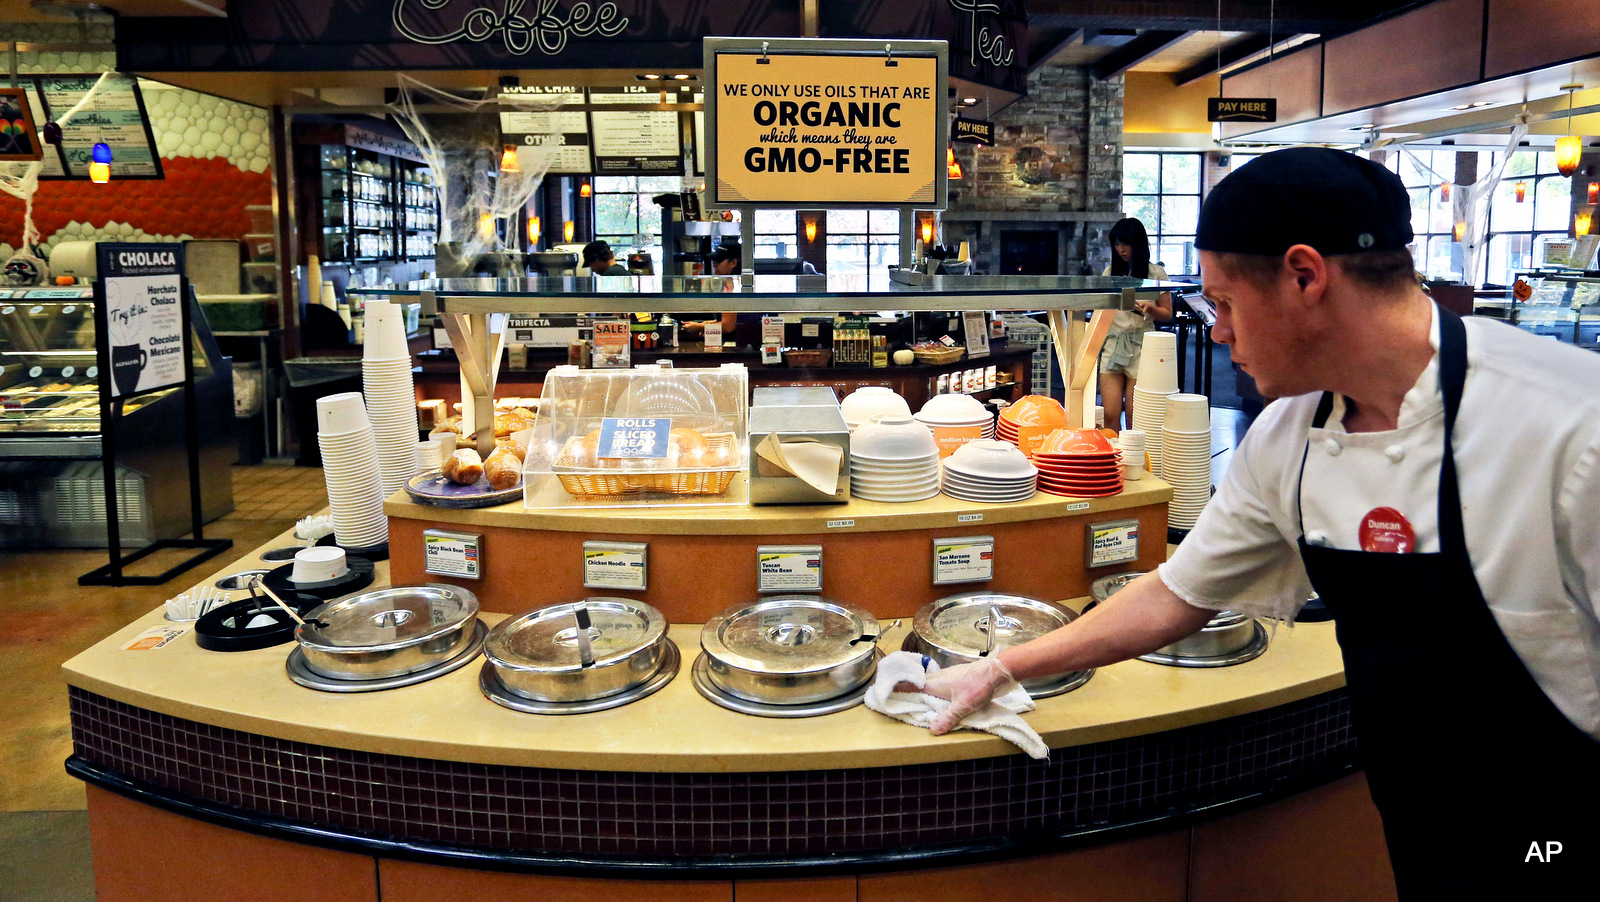 A grocery store employee wipes down a soup bar with a display informing customers of organic, GMO-free oils